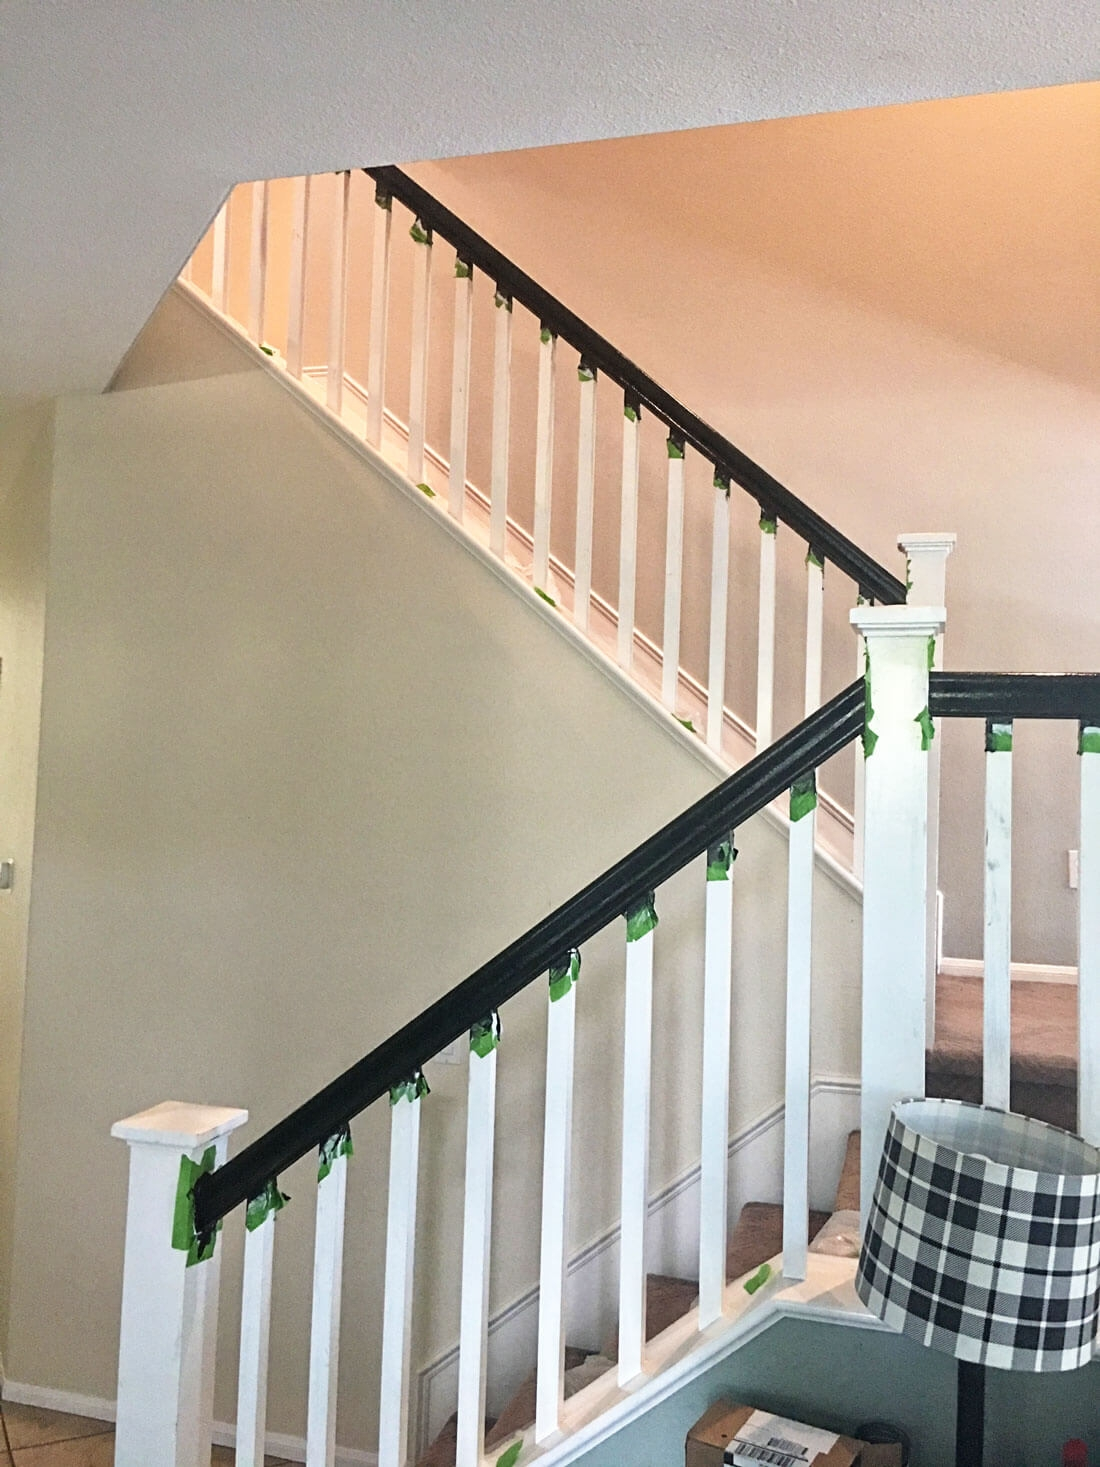 How To Paint Your Stair Railing And Banister Black From 30Daysblog | White Railing Black Spindles | Paint | Wrought Iron | Porch Railing | Iron Balusters | Aluminum Balusters